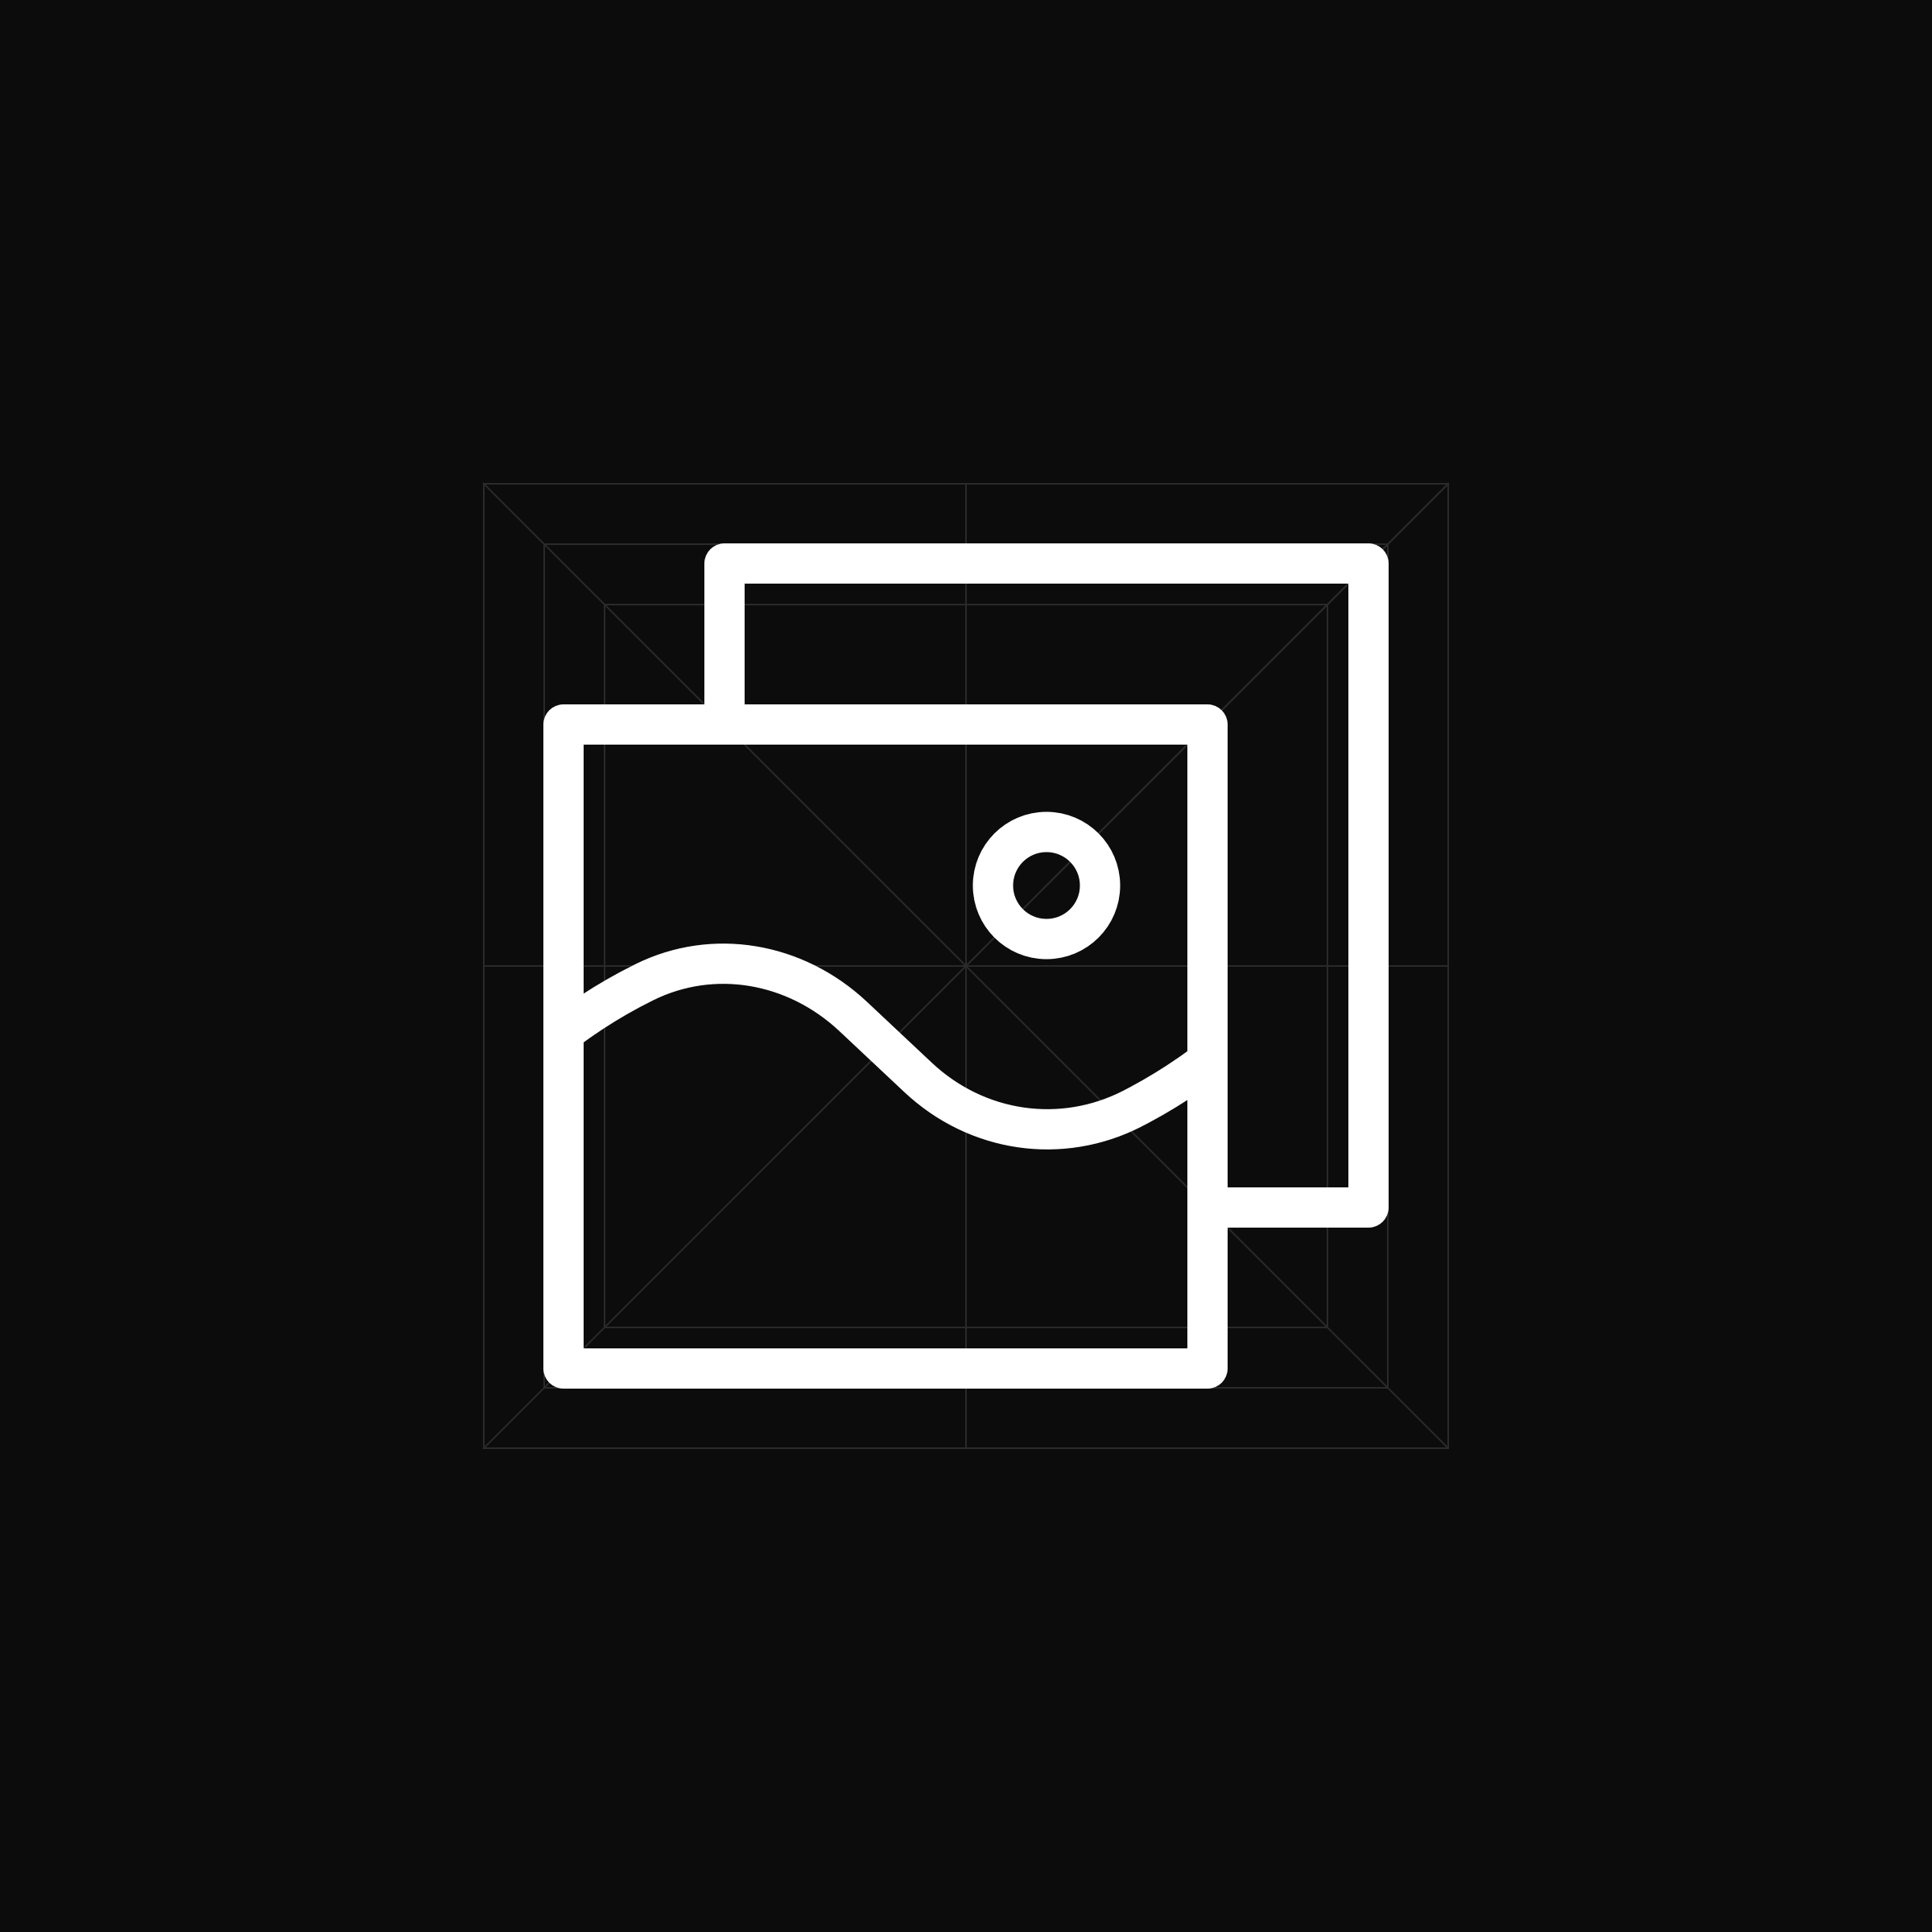 vzy-icon-img-outline